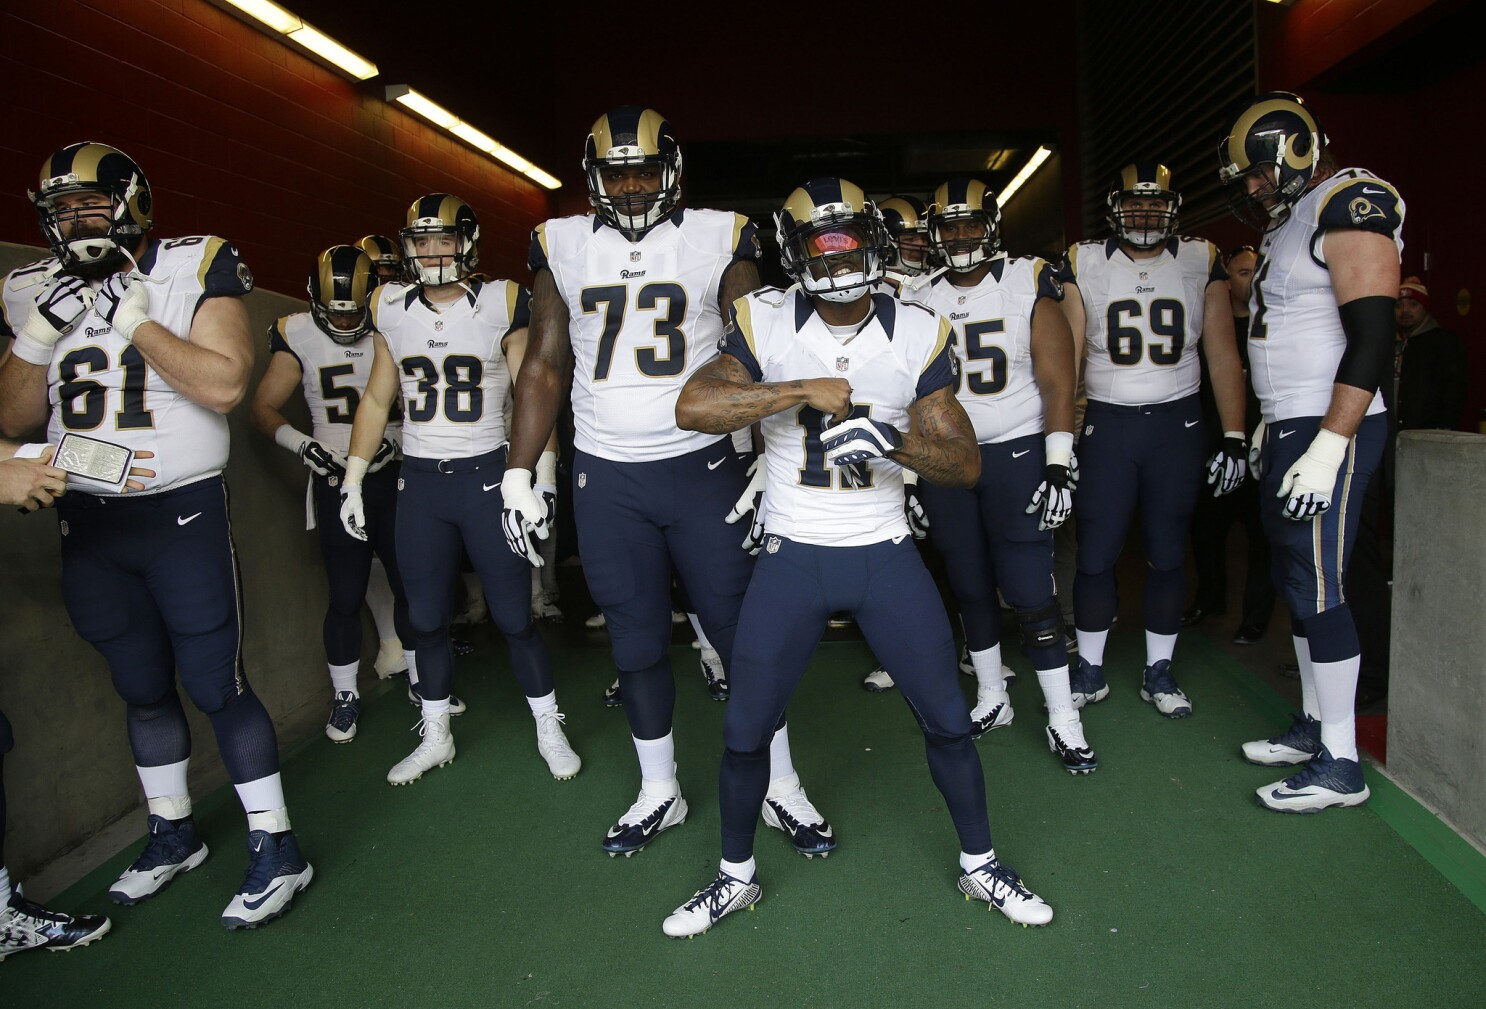 L A Rams Plan To Keep Current Uniforms Until 2019 Los Angeles Times